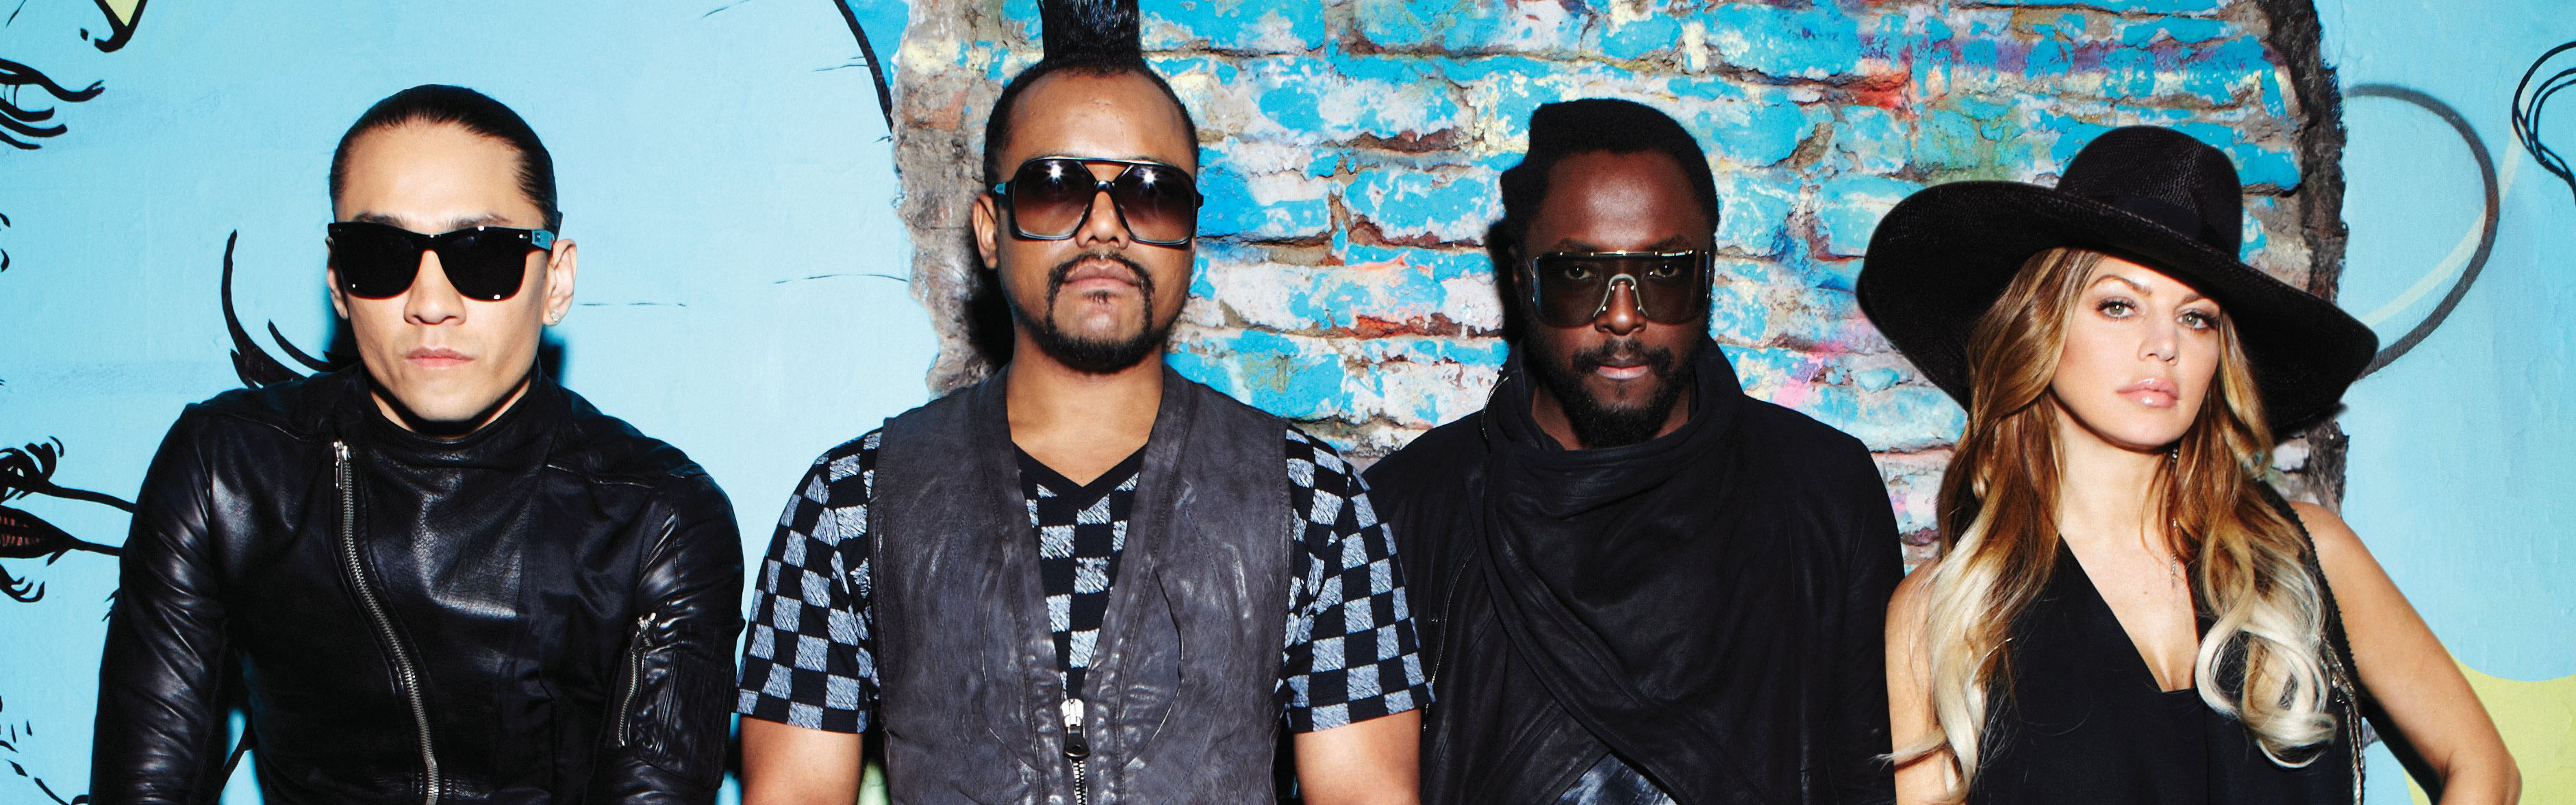 Black eyed peas 2011 billboard 650x430